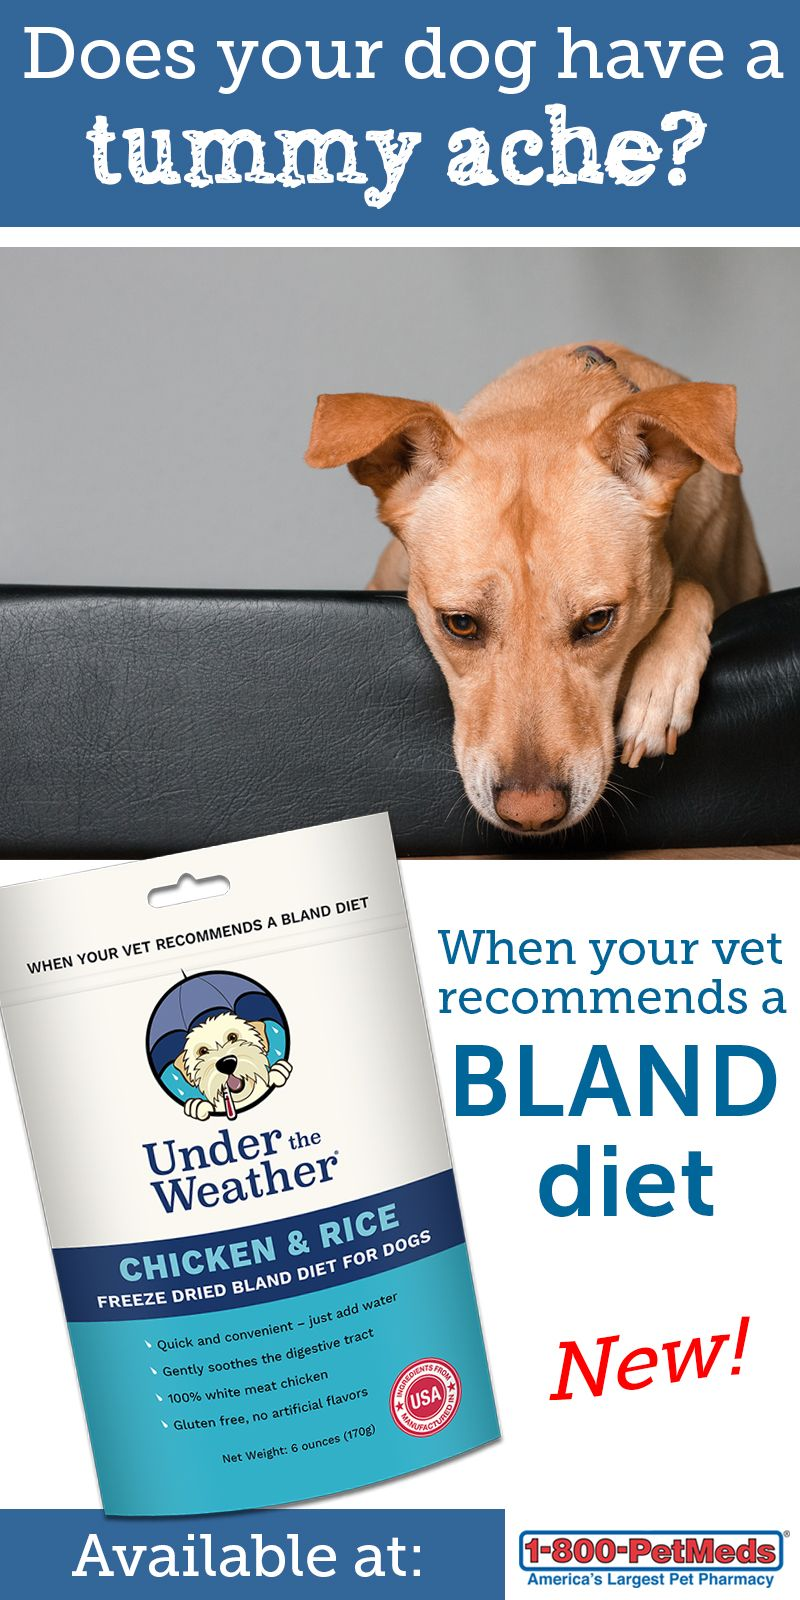 Under The Weather Chicken Rice Freeze Dried Bland Diet For Dogs